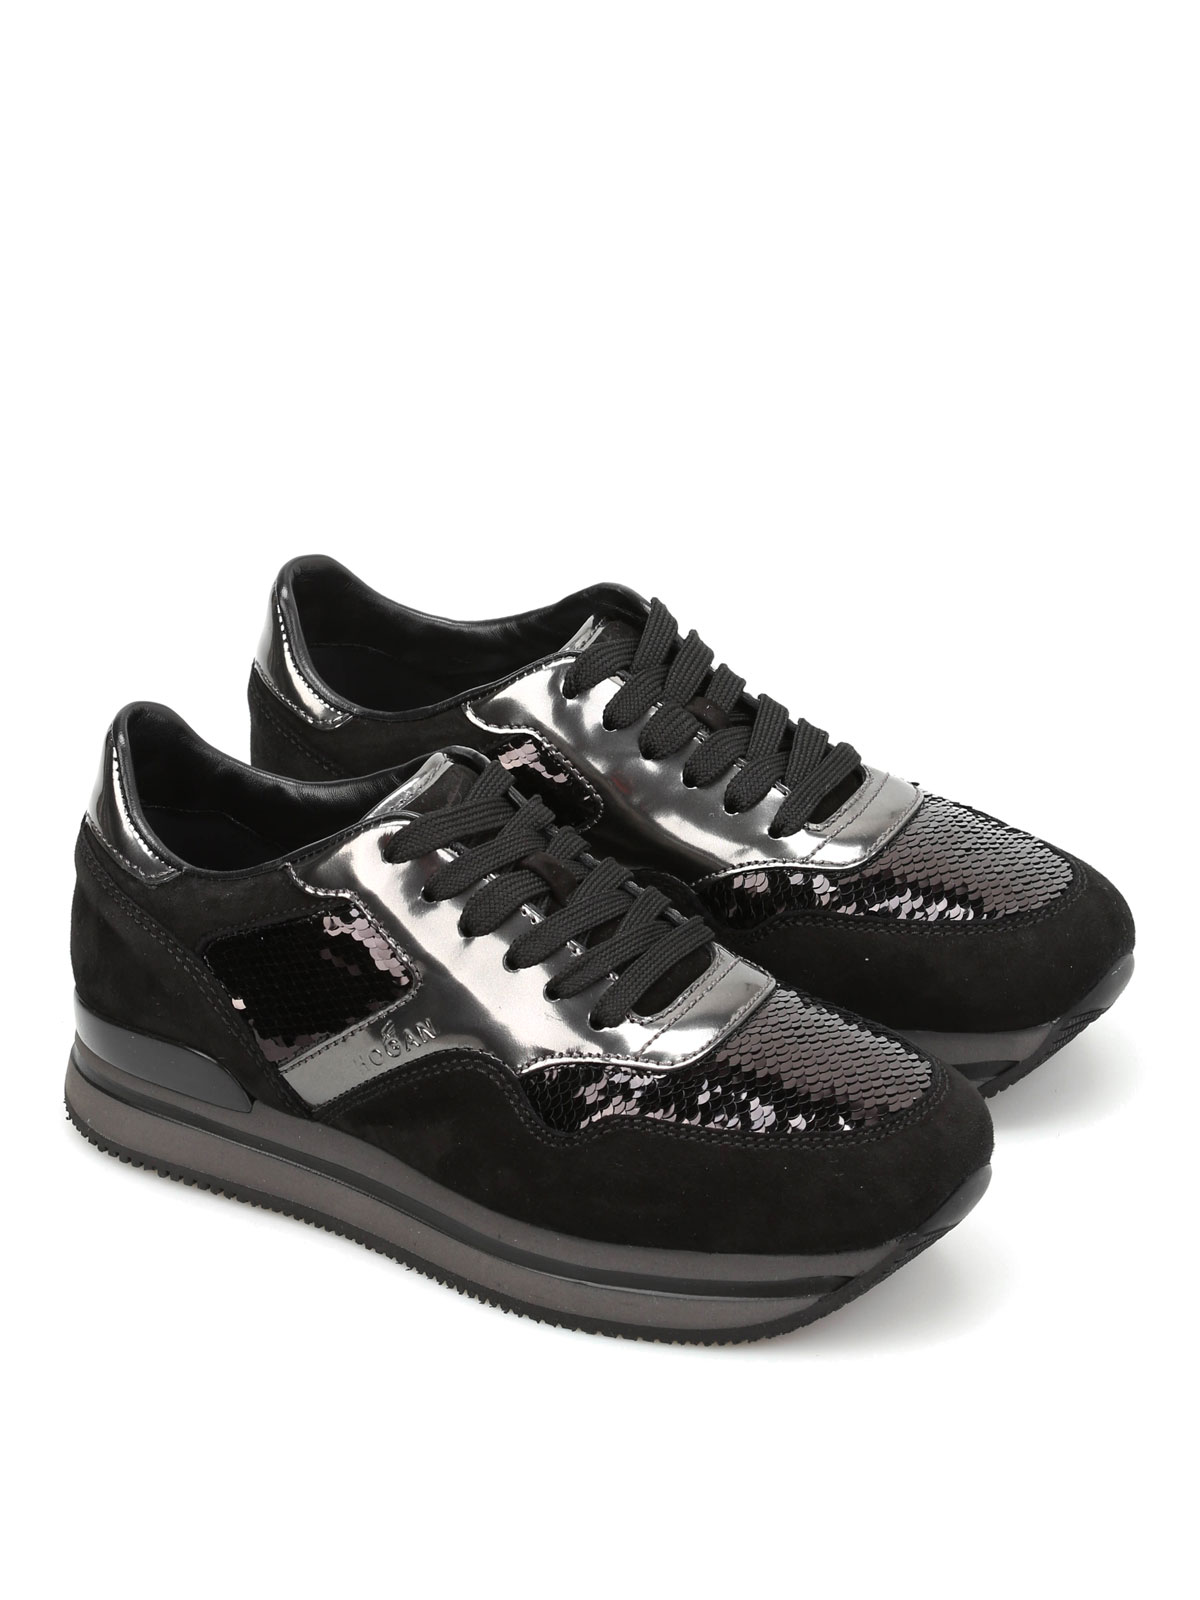 H222 Sequined sneakers Hogan wnh6iQ13V